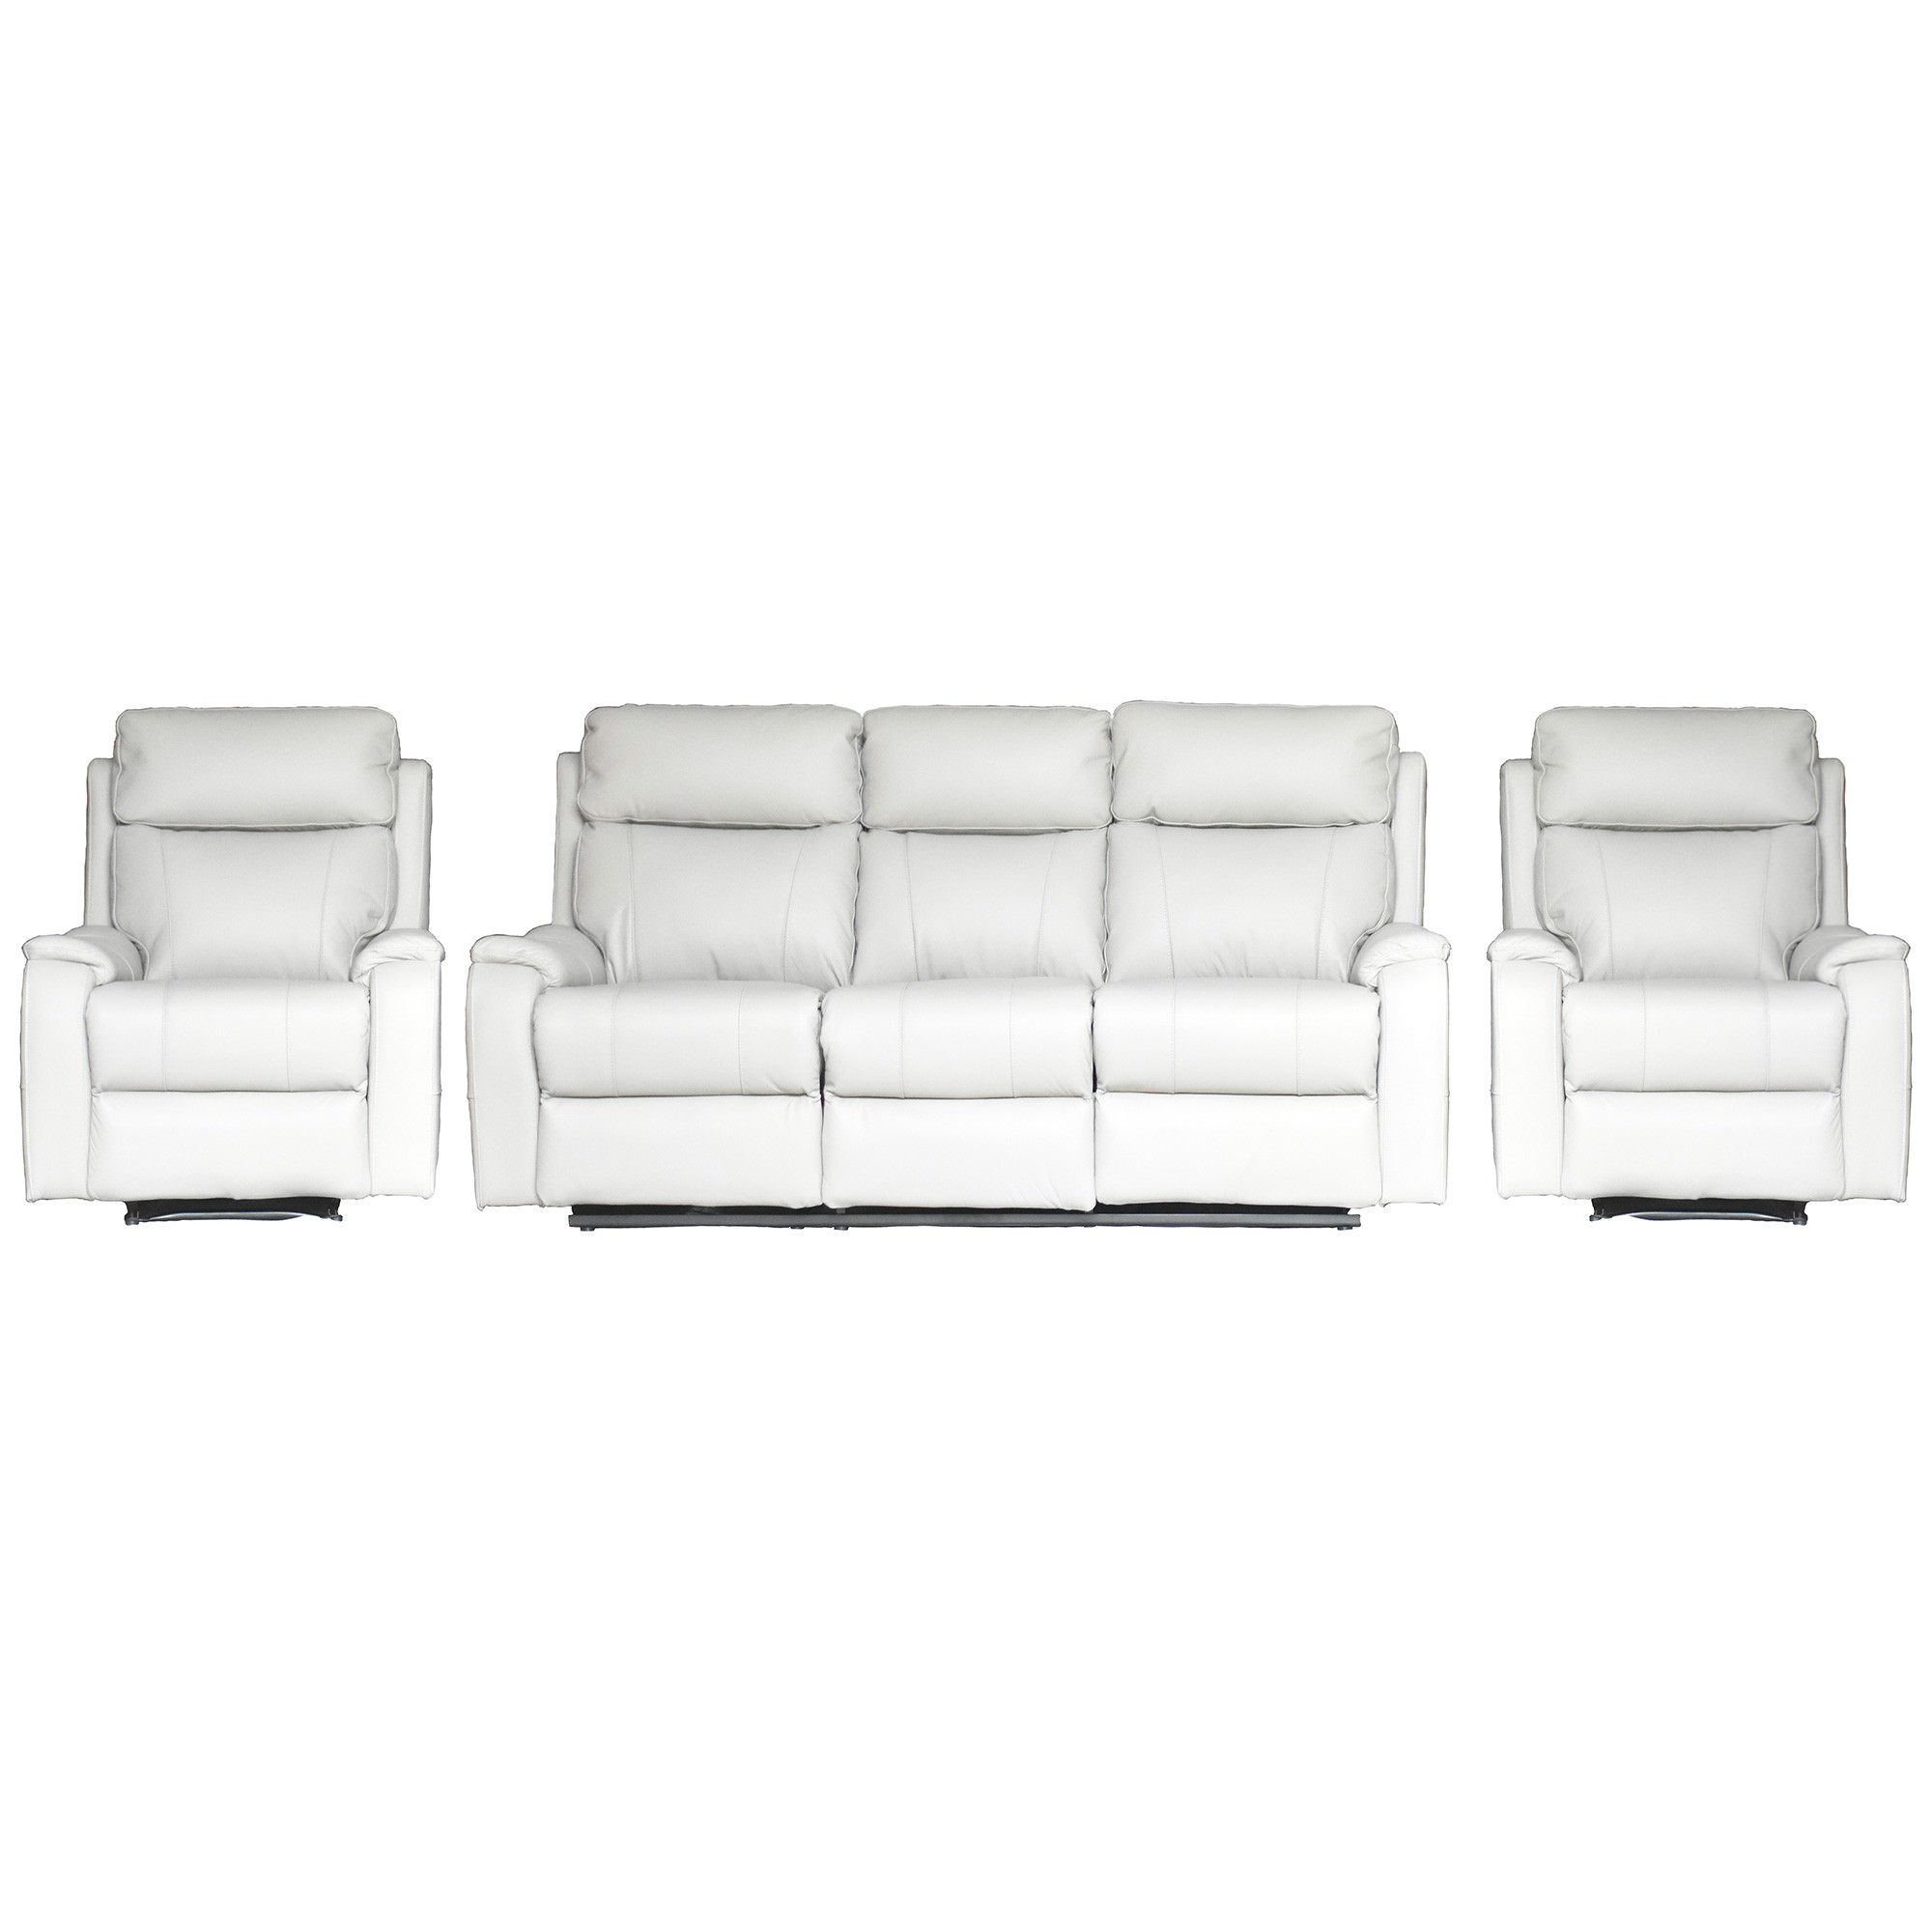 Texas 3+1+1 Seater Leather Recliner Sofa Set, Mist